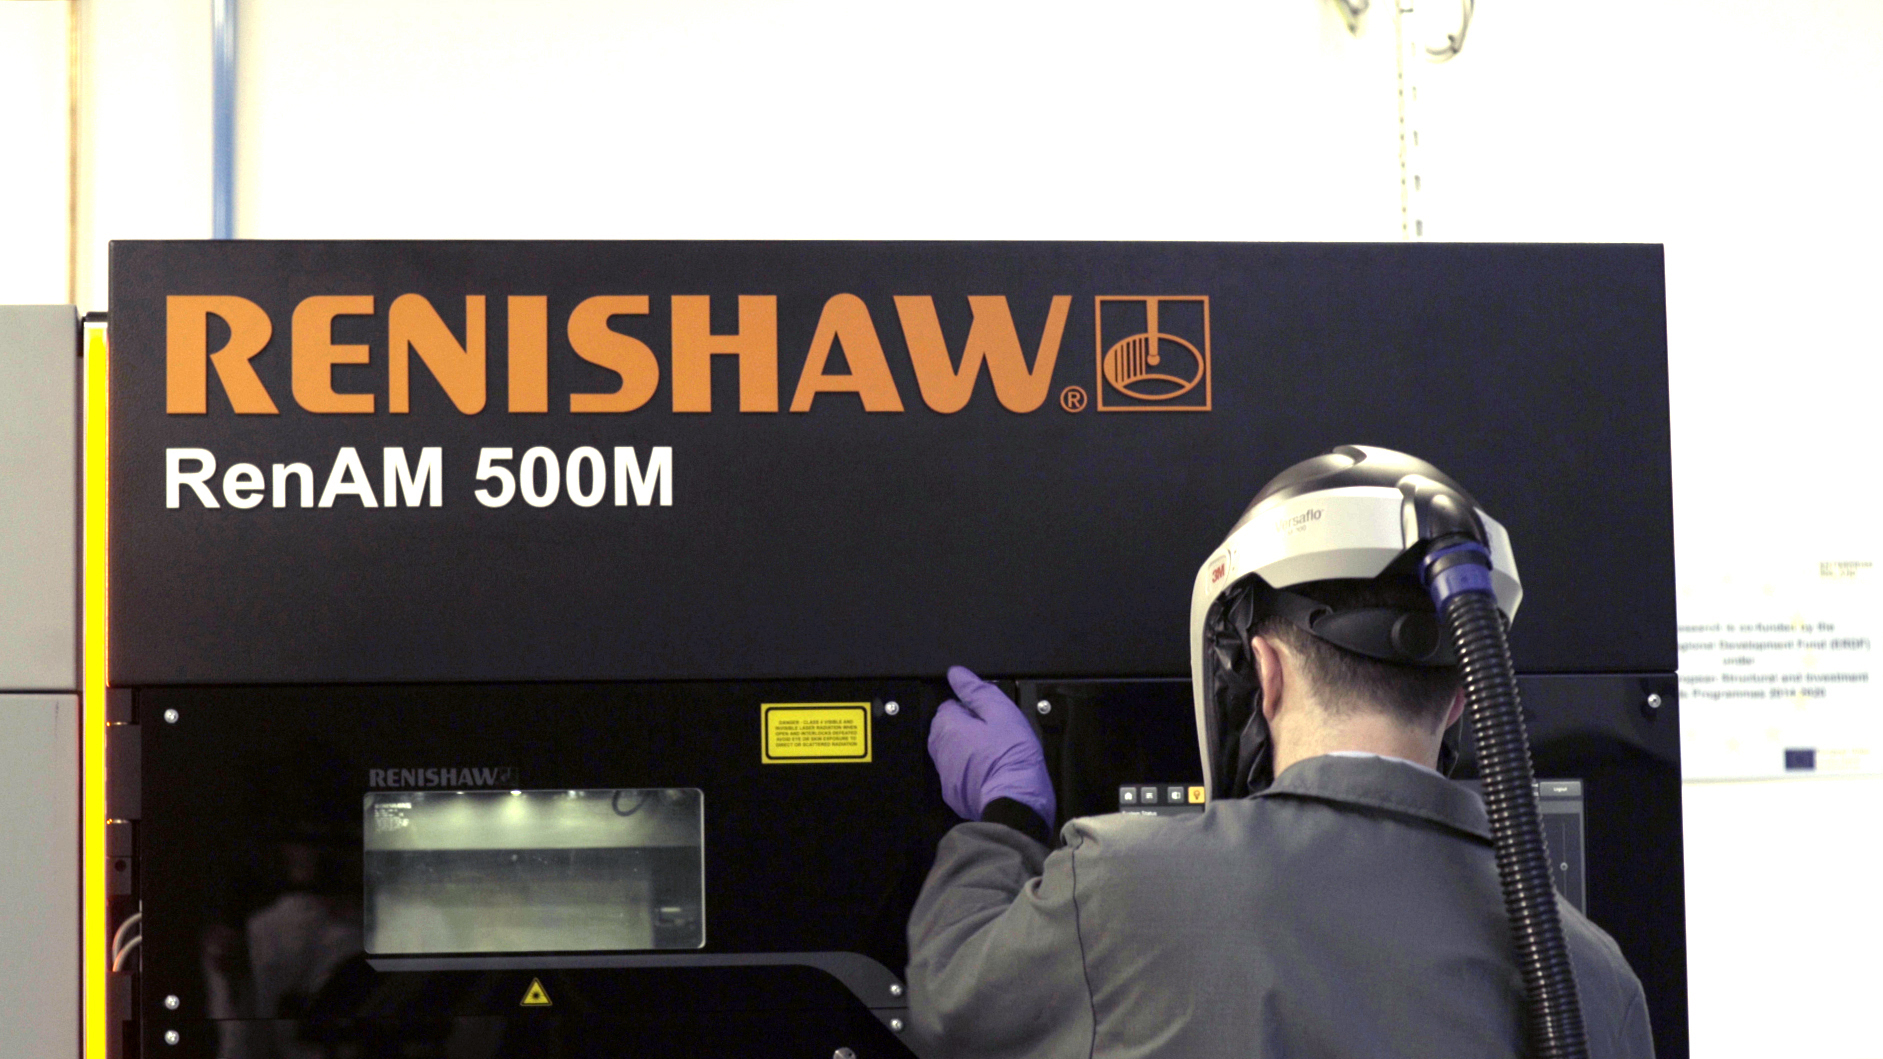 Renishaw AM systems were used to realise the physical part